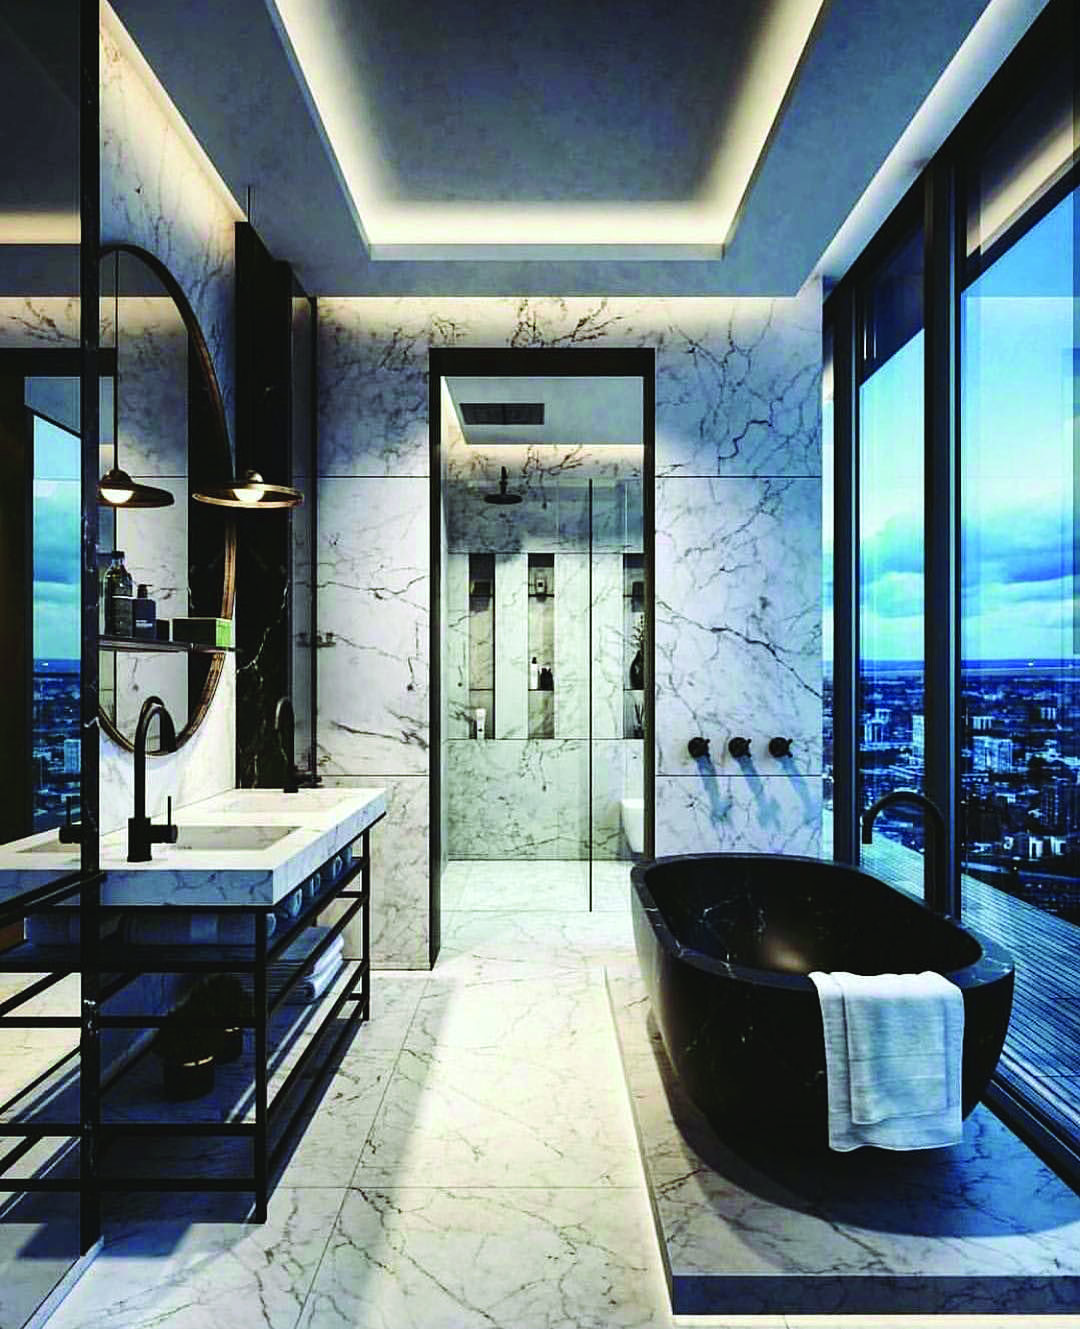 Spectacular Bathroom Concepts For An Area You Ll Certainly Never Wish To Leave Behind Dova Home House Design Beautiful Bathrooms Dream Bathrooms